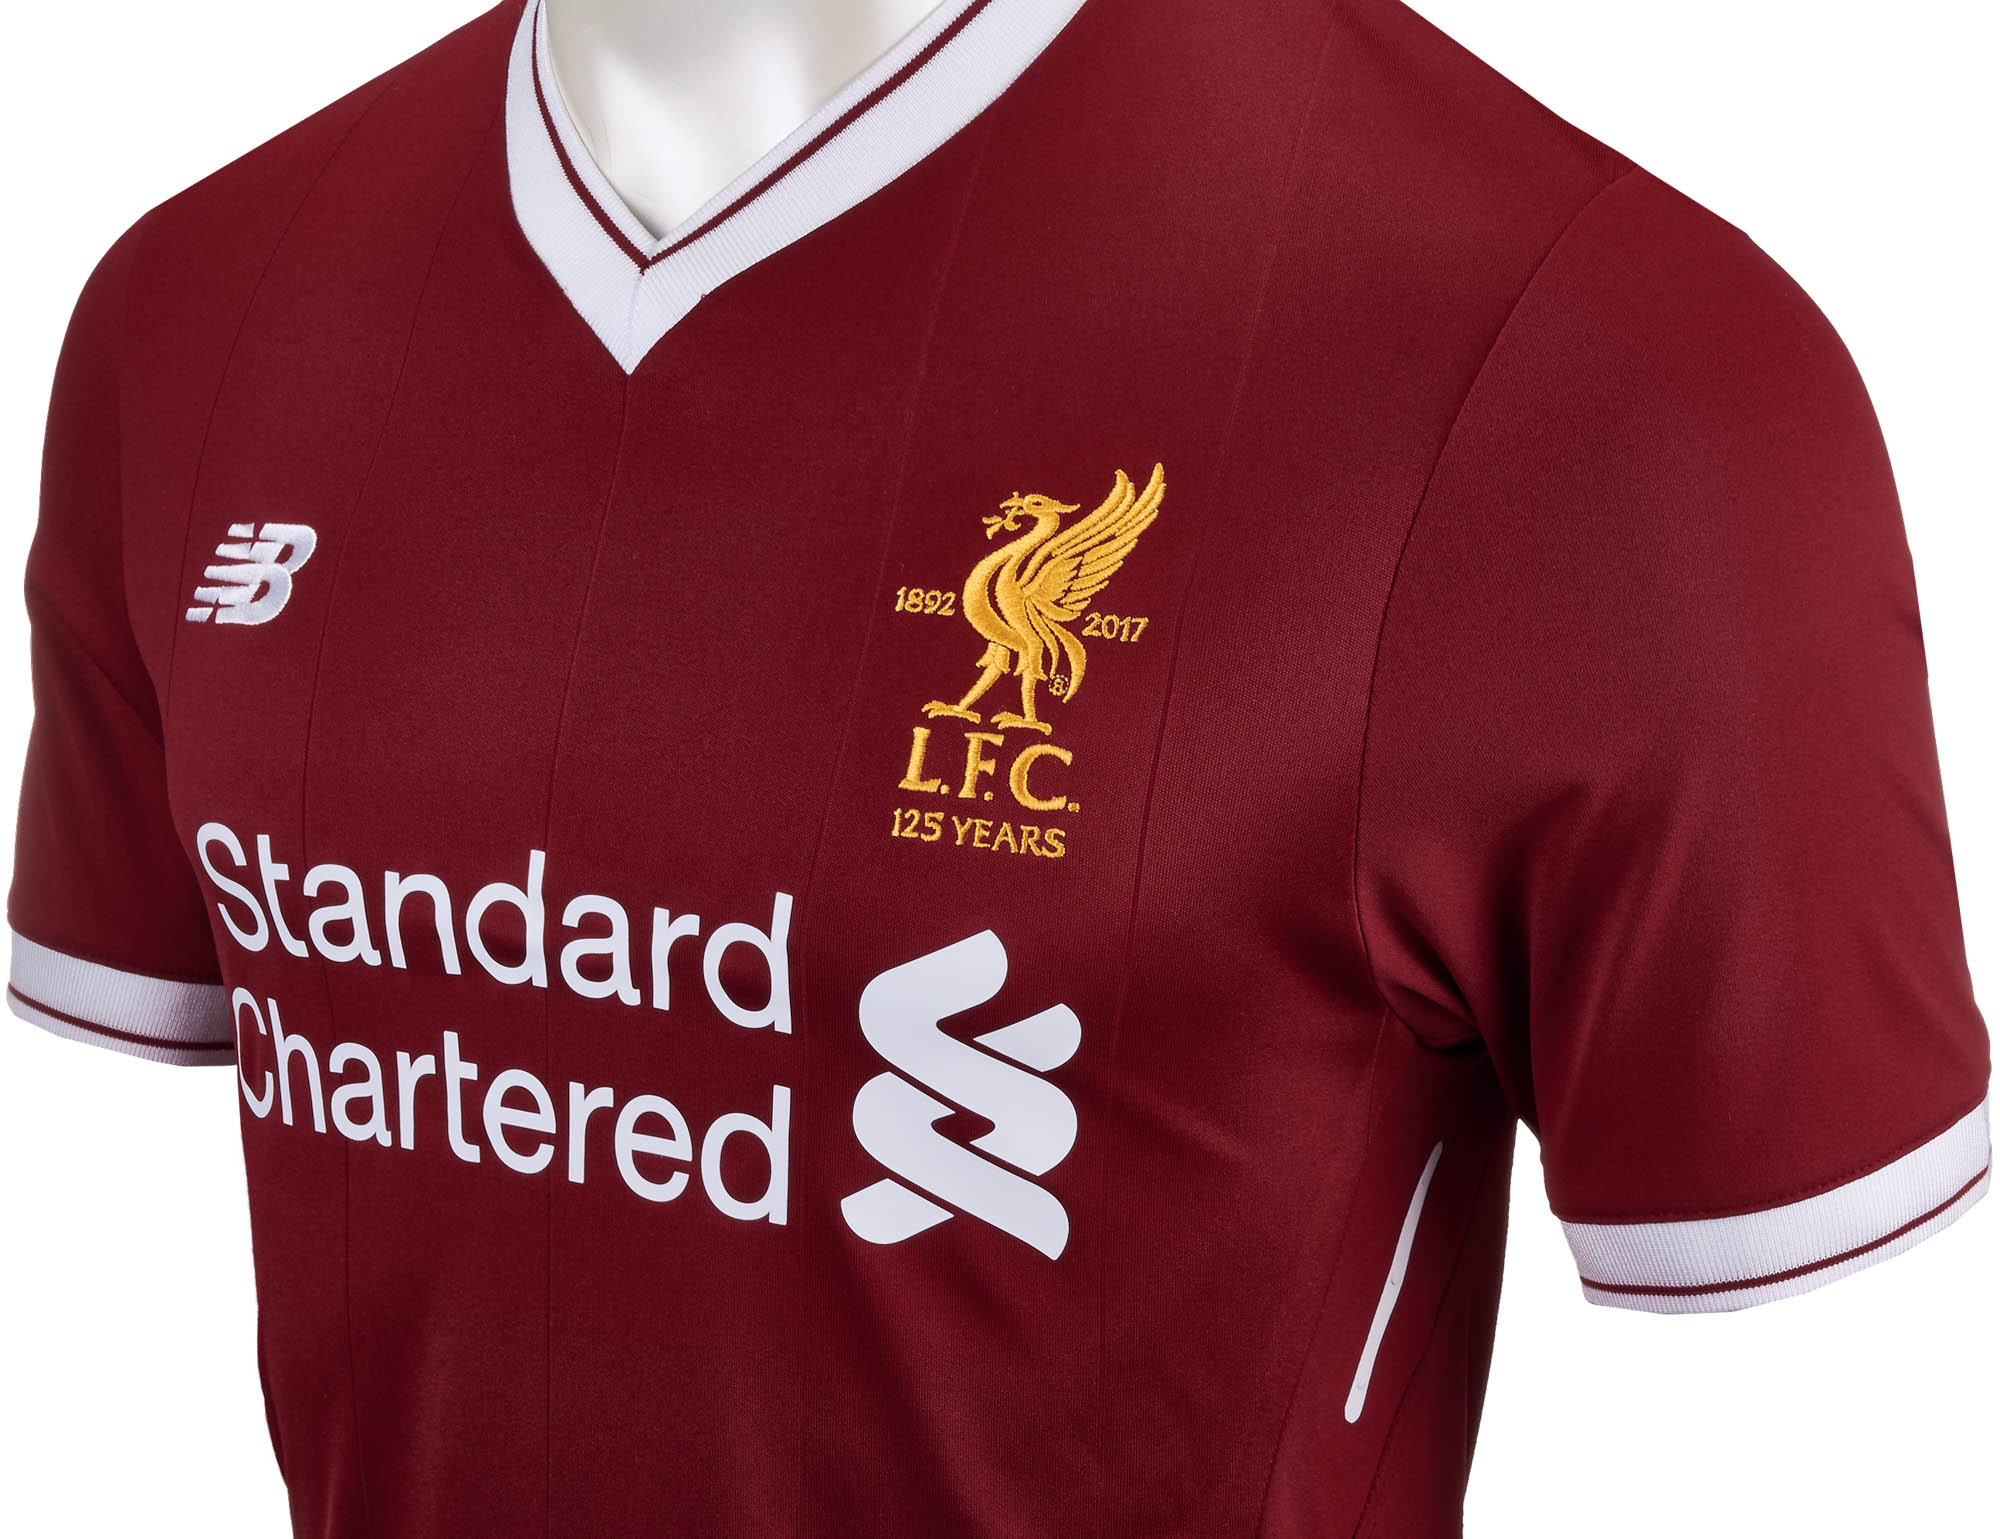 premium selection d2bc1 55d50 New Balance Liverpool Authentic Home Jersey 2017-18 - Soccer ...